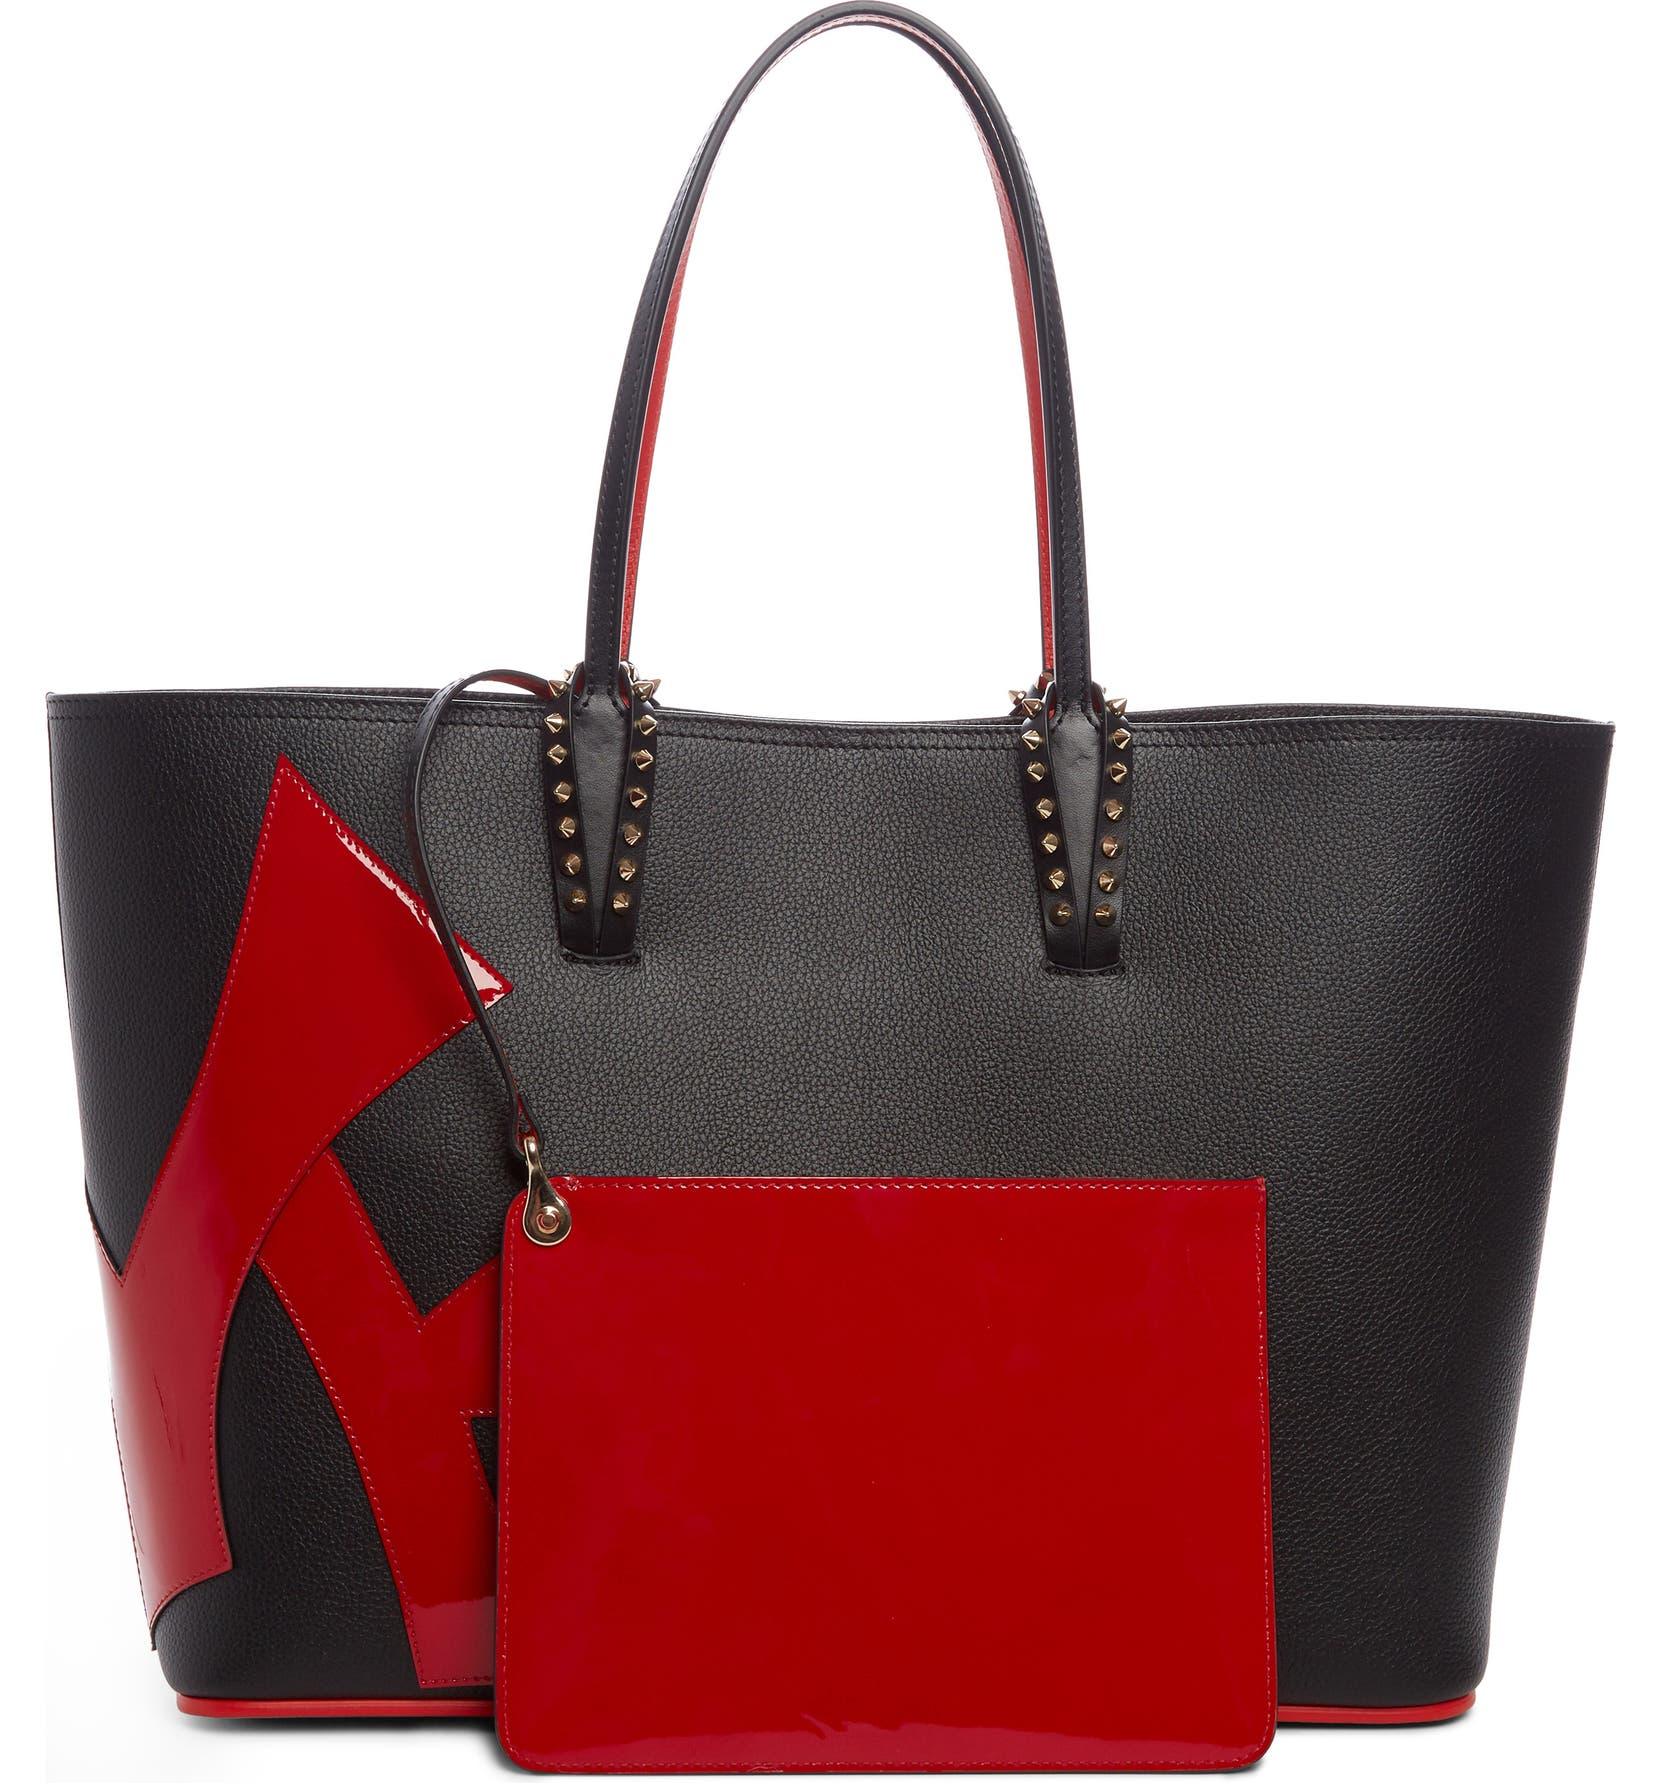 dc69ee9a433 Cabata Love Embellished Leather Tote